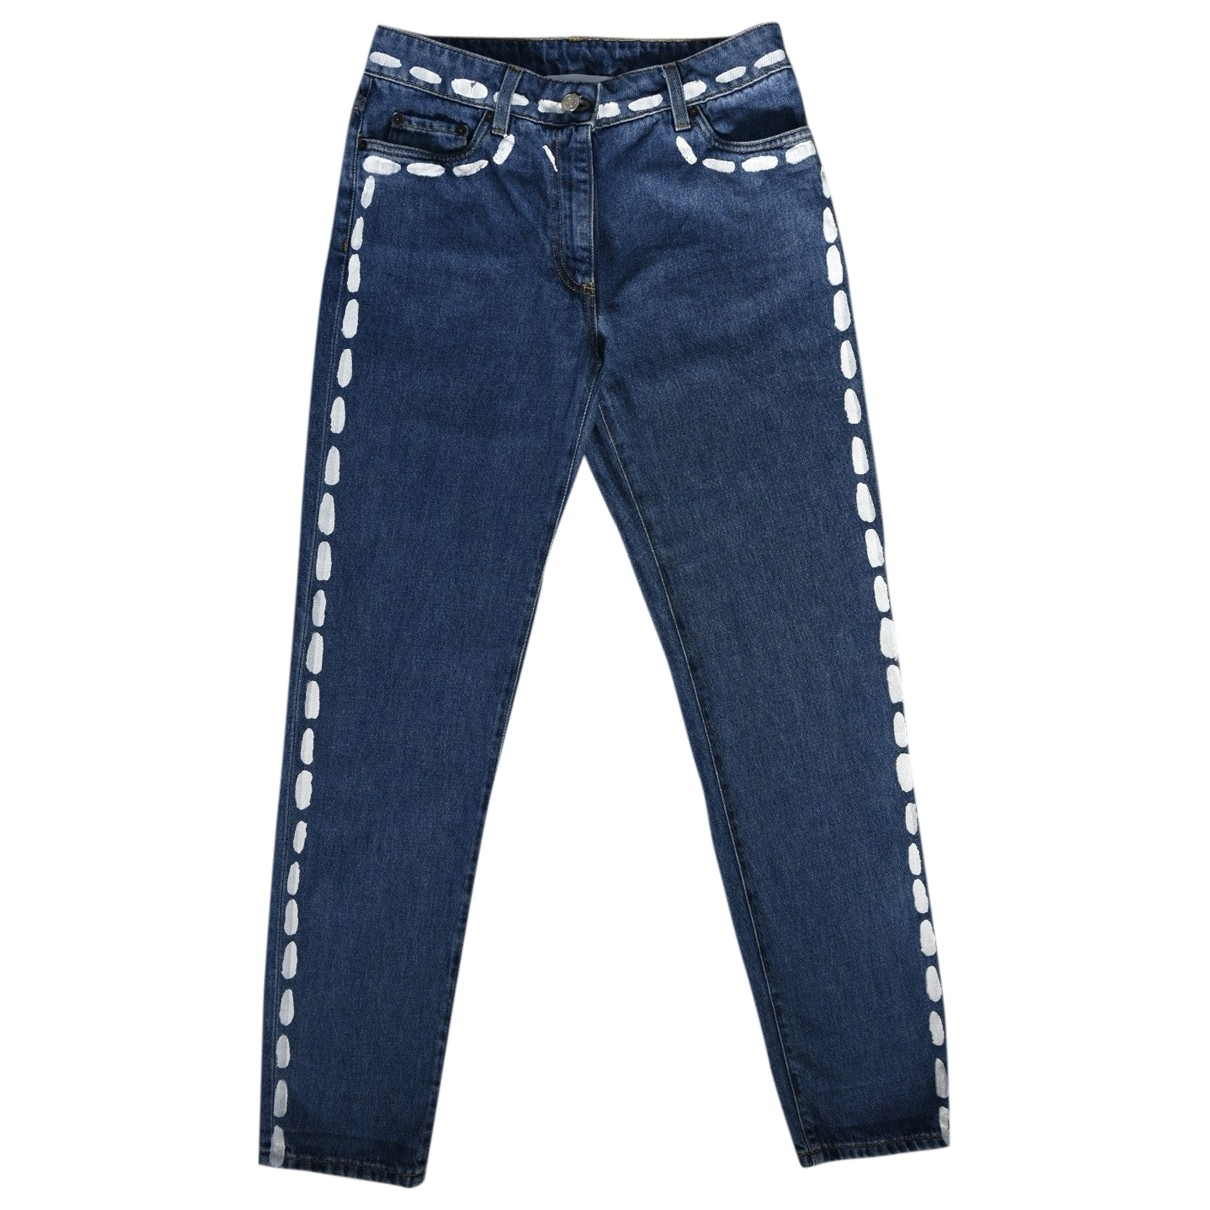 Moschino \N Blue Cotton Jeans for Women 36 FR